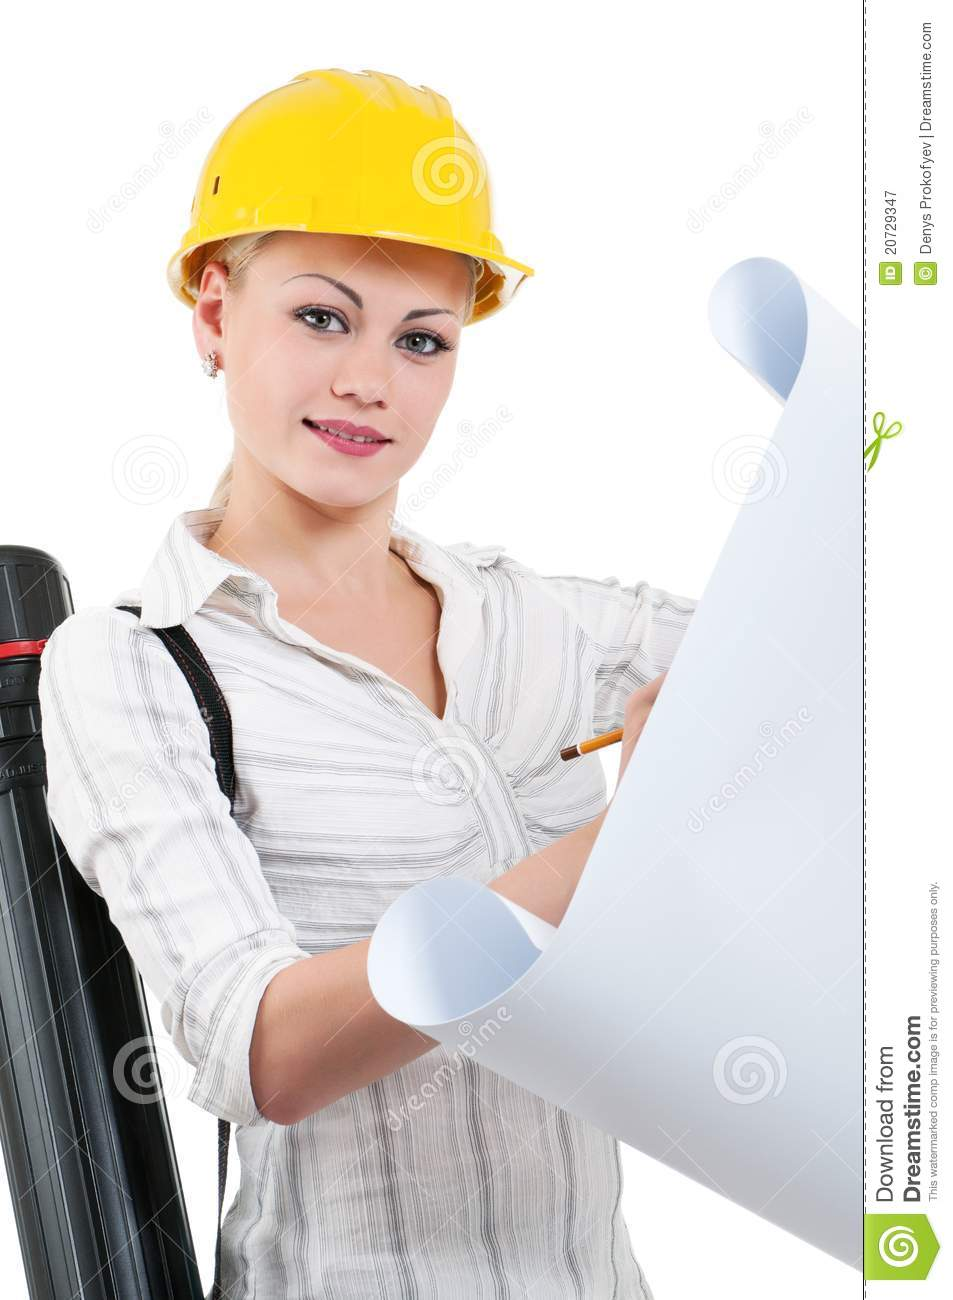 Girl With Hard Hat Royalty Free Stock Photography Image